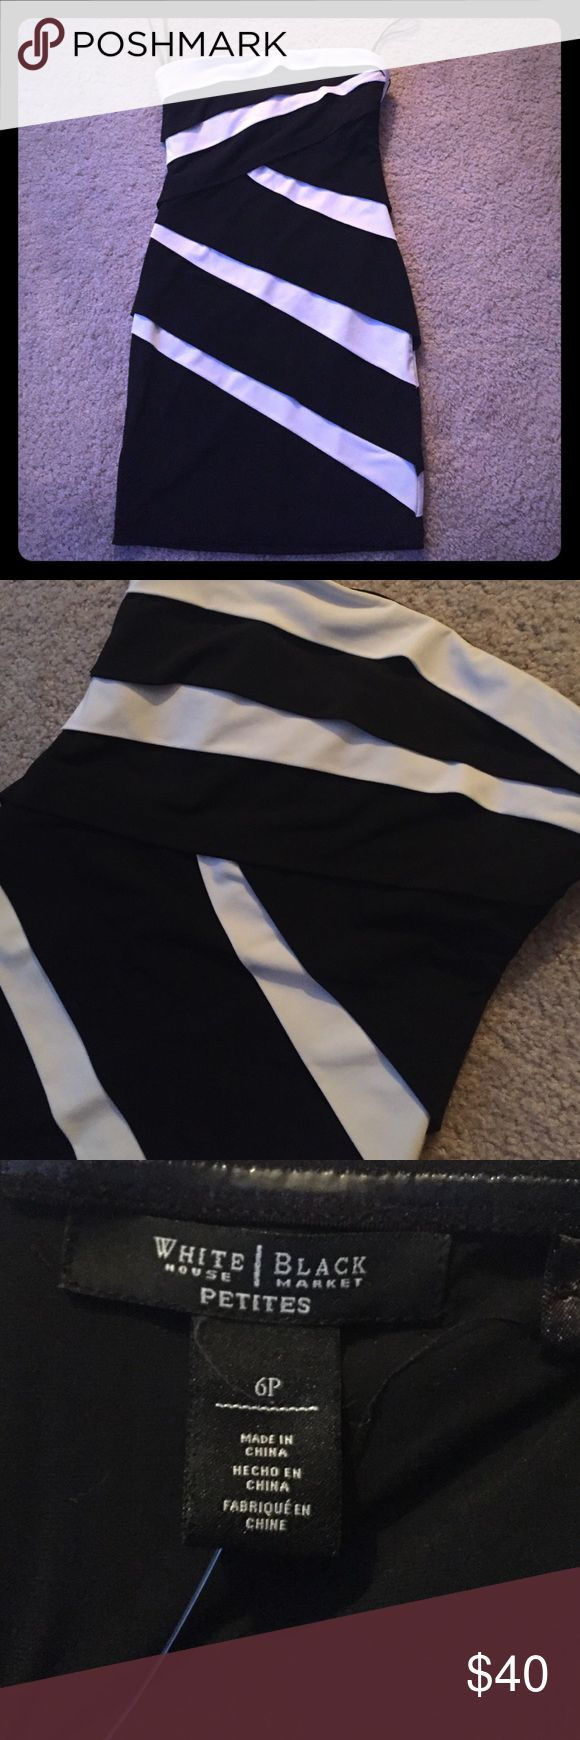 White House Black Market bodycon strapless dress Black and white bodycon dress from WHBM. Elastic lining. NWOT, NEVER WORN besides being tried on. Super hot going-out dress!  White House Black Market Dresses Strapless